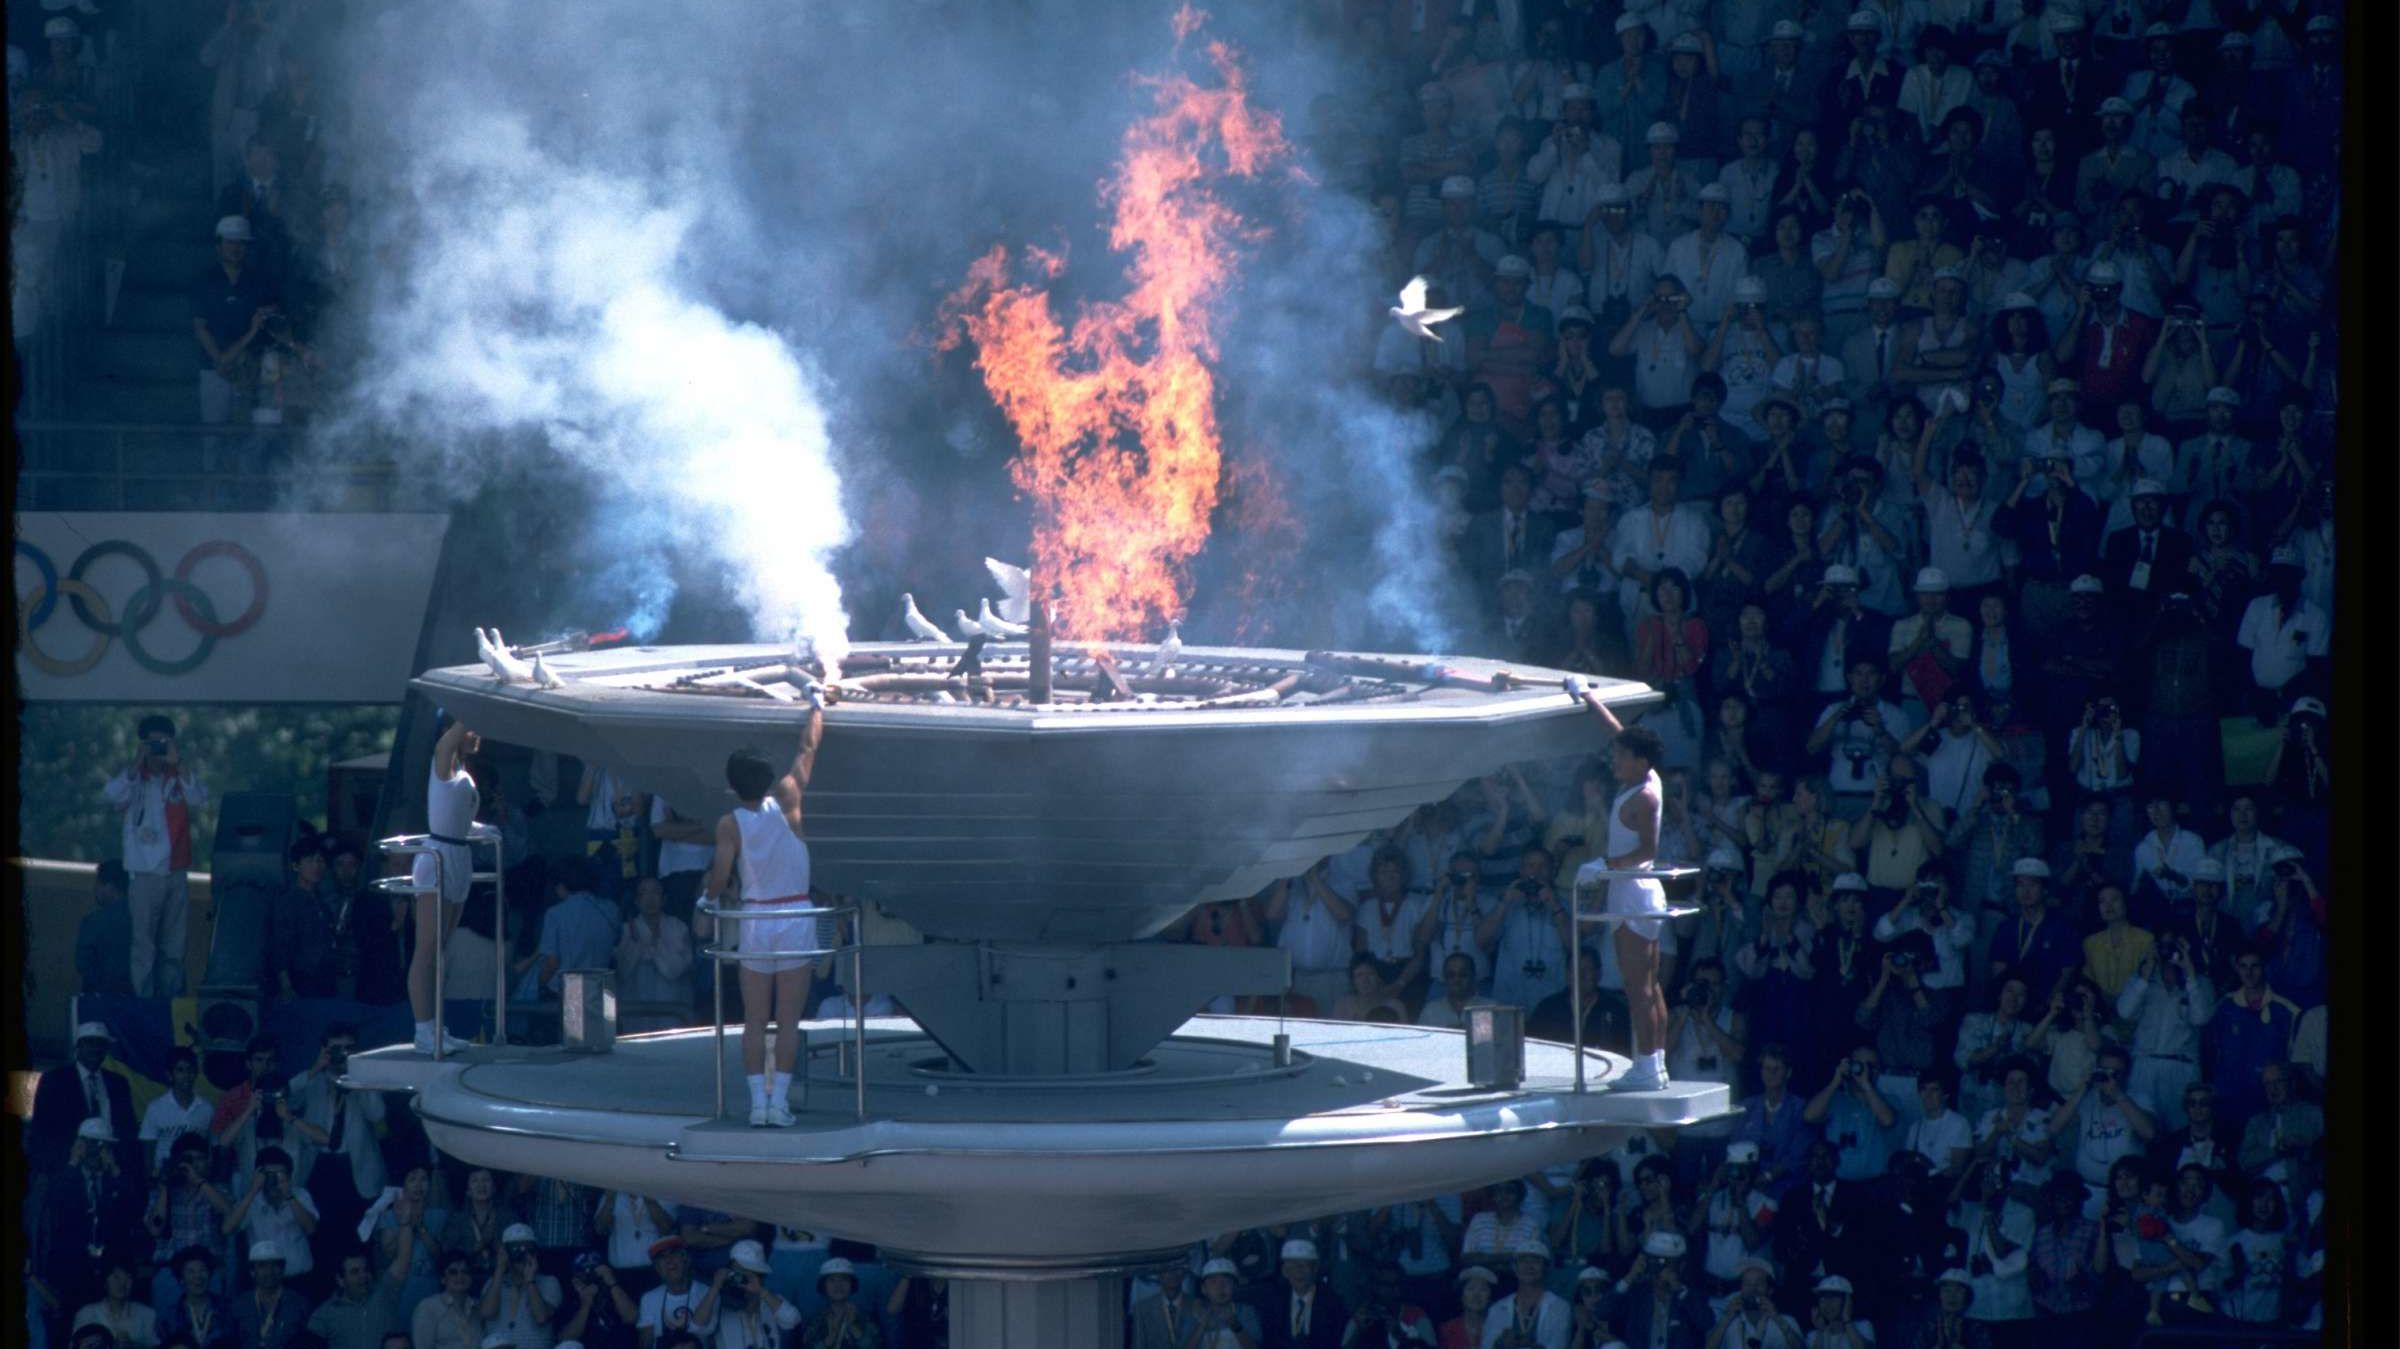 5 Memorable Moments from Olympic Opening Ceremonies